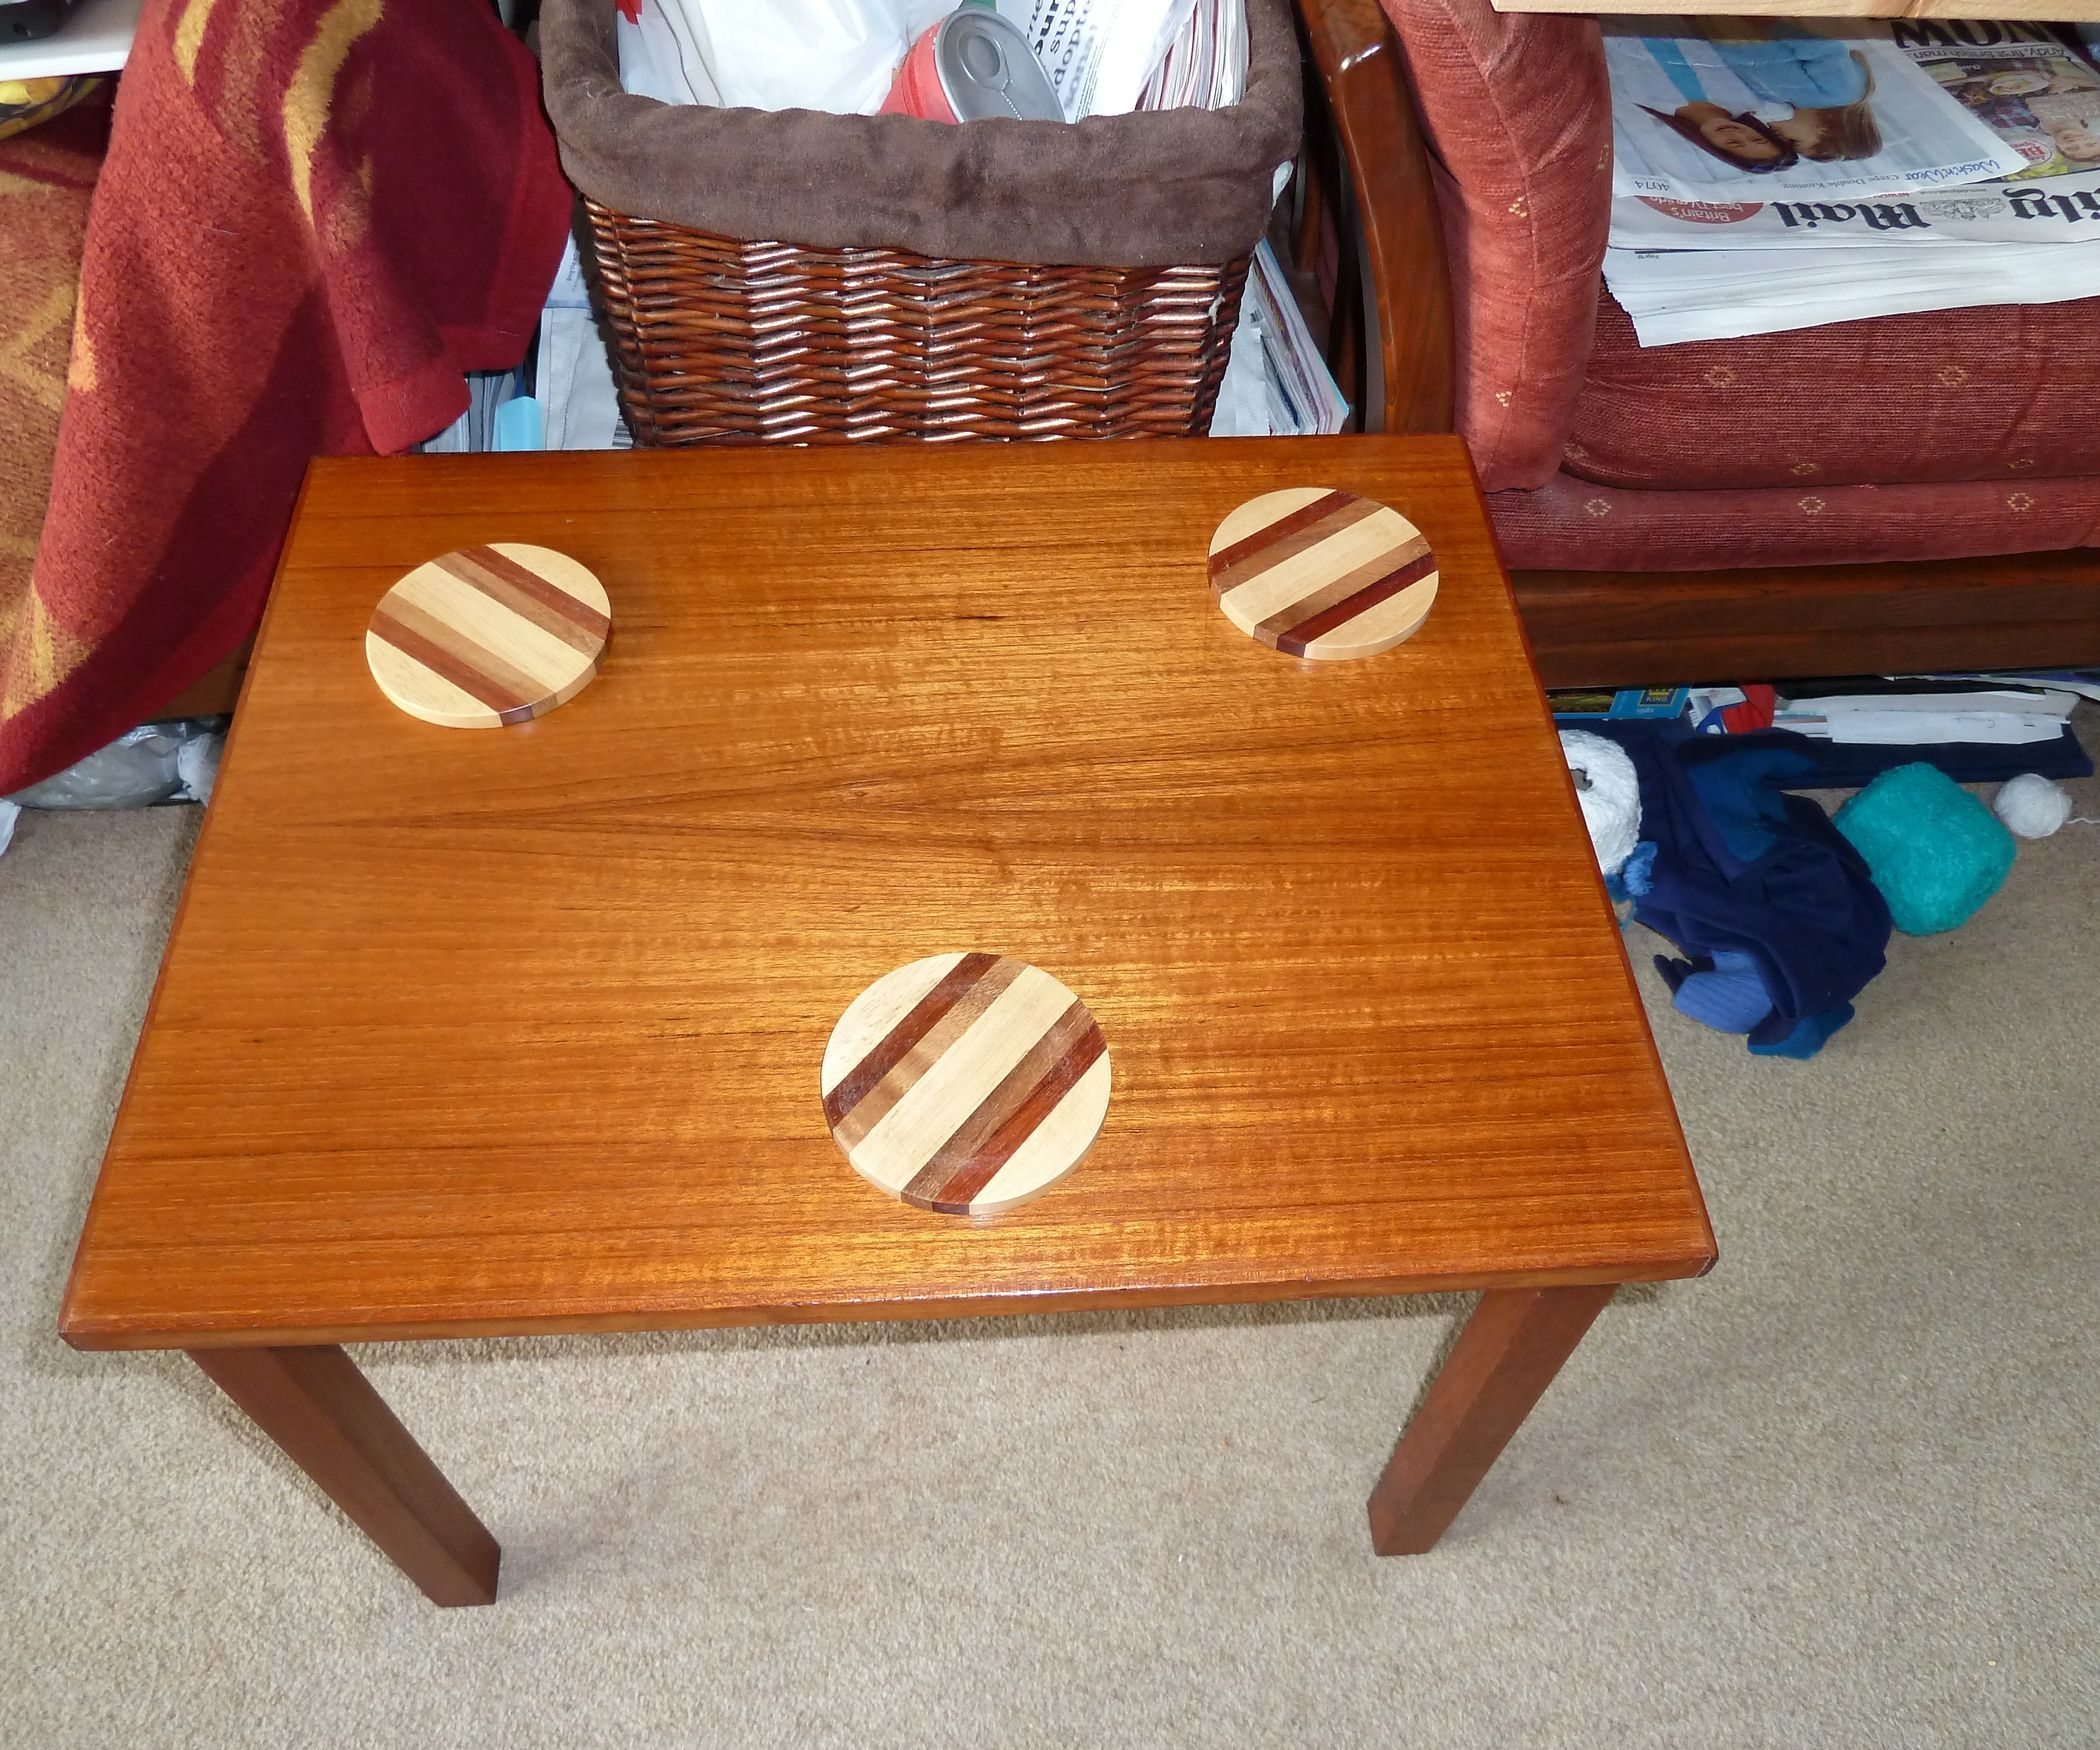 How to Restore Wooden Tables/Furniture   Diy pallet ...